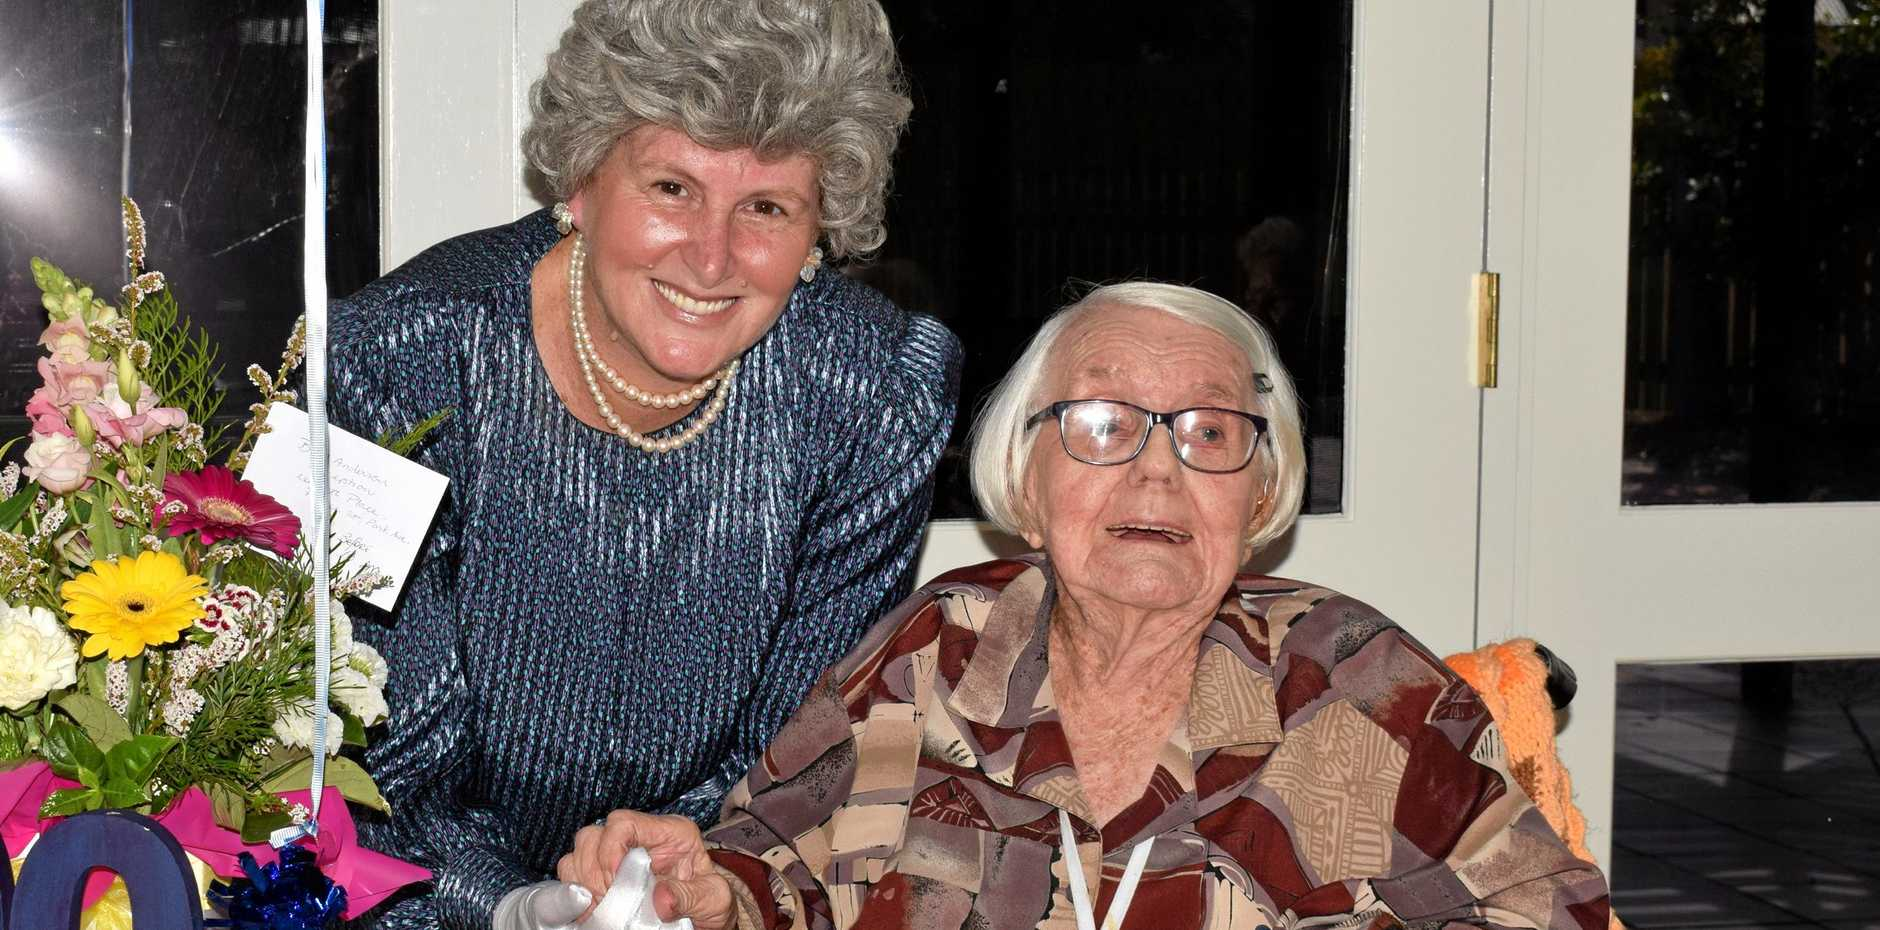 Betty Anderson received a visit from 'the Queen' (Leister Place's recreation officer Jeanette McMaster) during her 100th birthday celebrations Tuesday